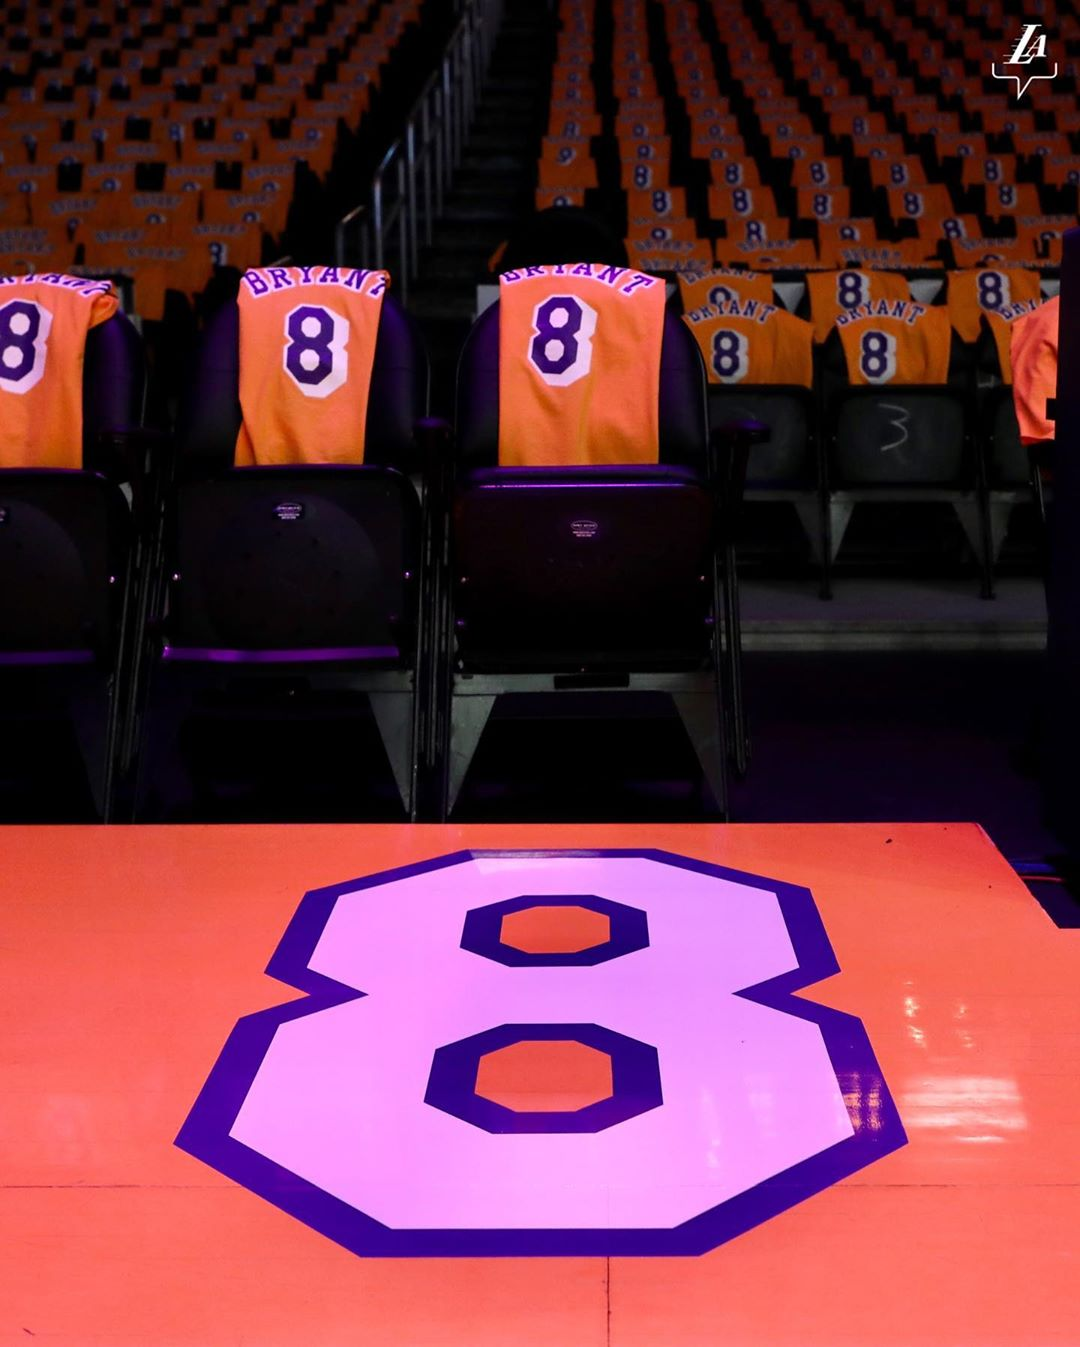 82541839 236000747396926 4112251949104821010 n - Kobe Bryant's jersey numbers 8 and 24 officially retired, here is why